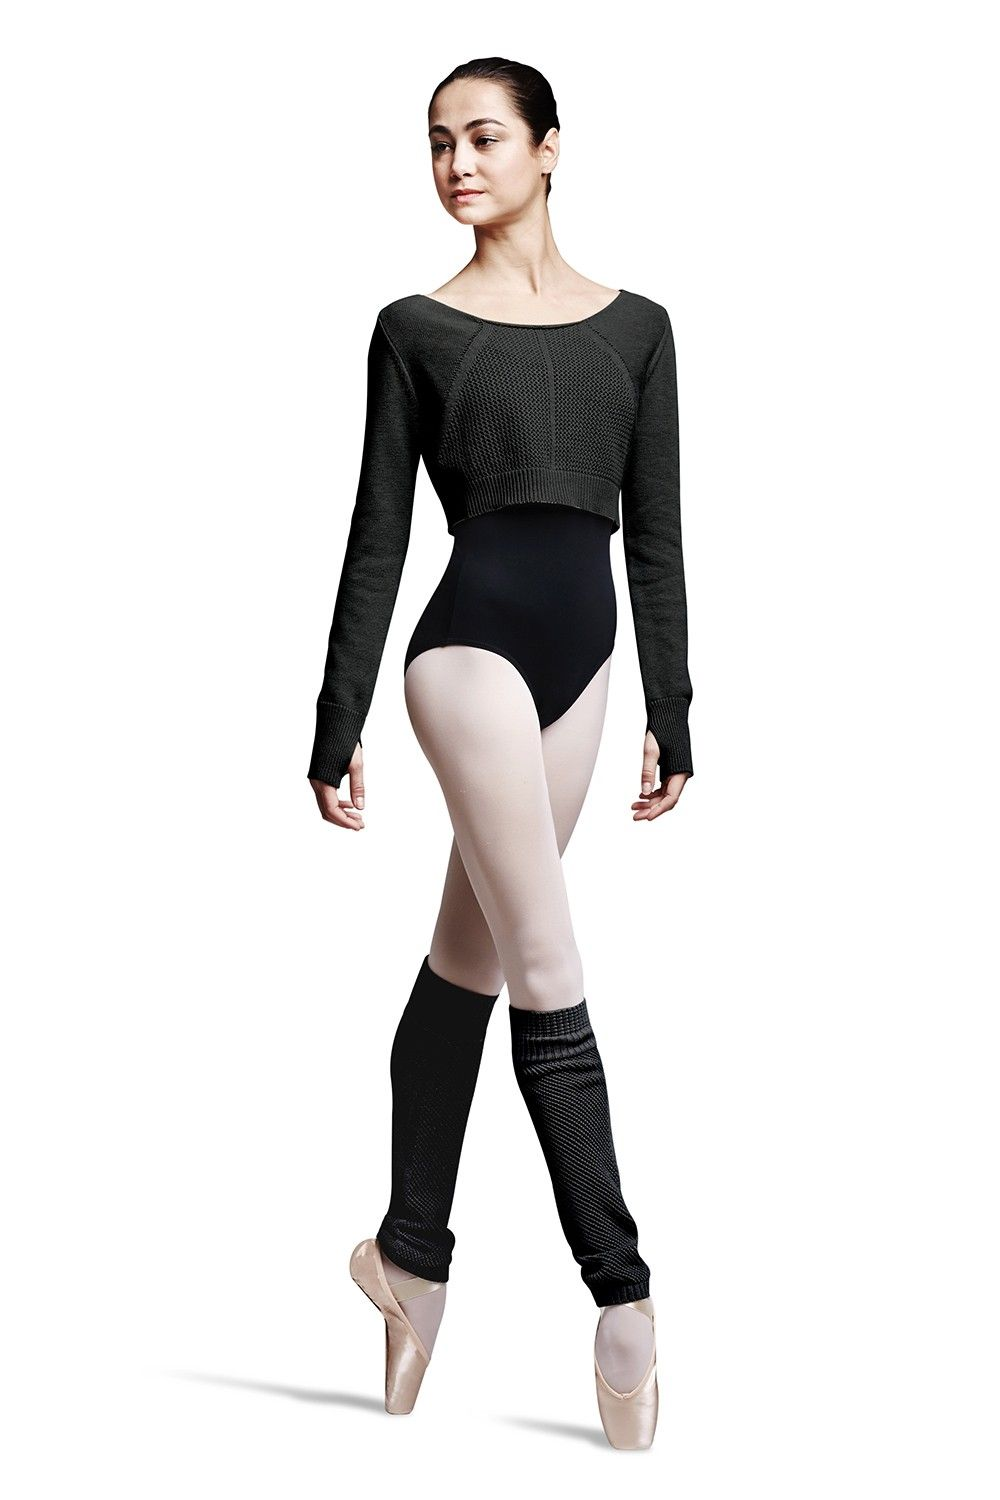 b4fc1f4ae Bloch® Women's Dancewear & Accessories - Bloch® US Store Ballet  Fashion, Dance